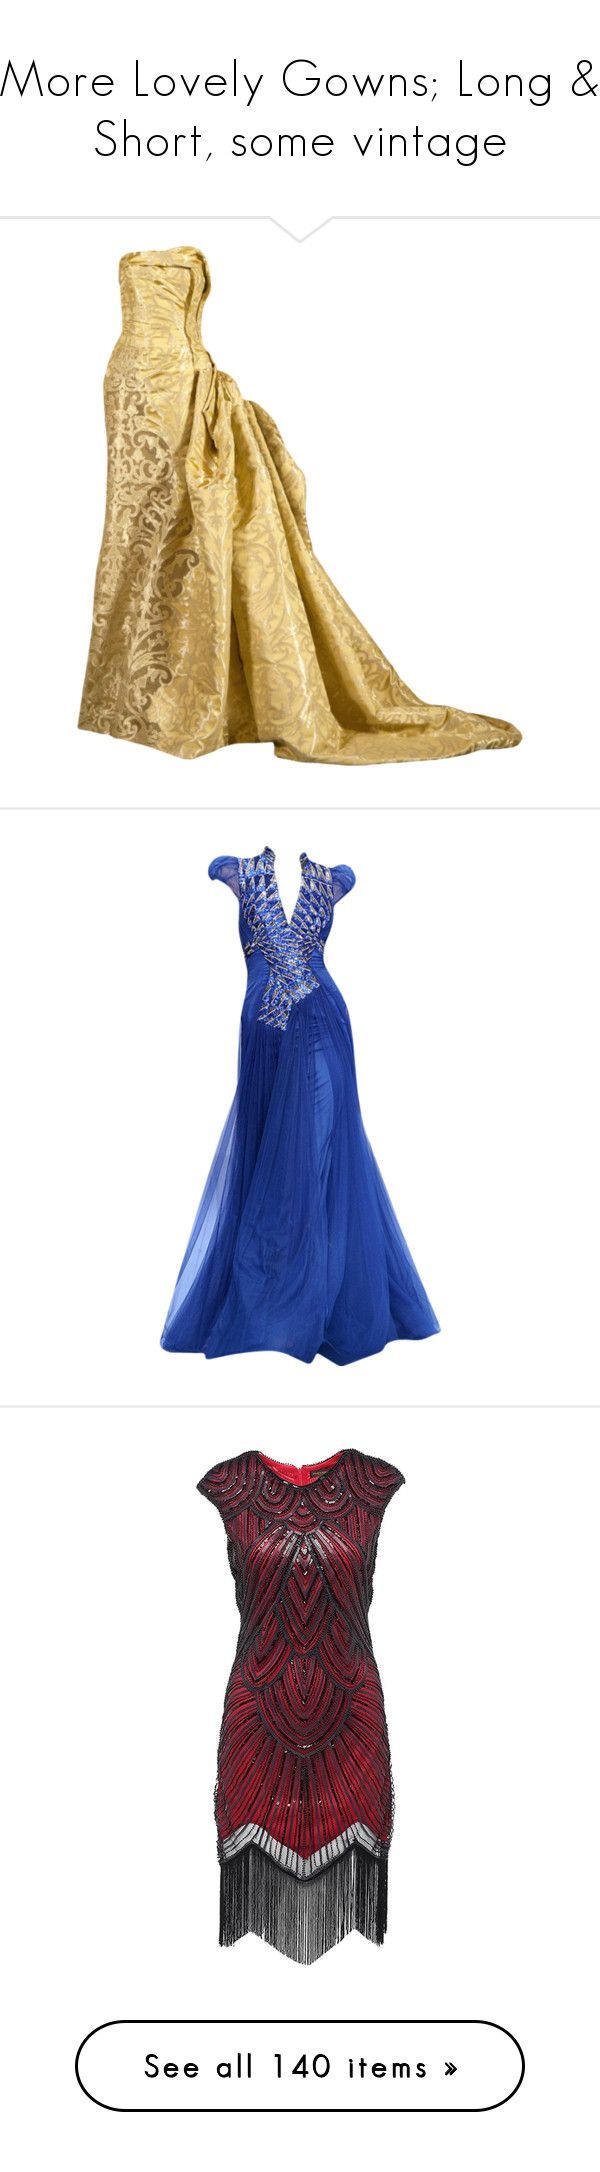 """""""More Lovely Gowns; Long & Short, some vintage"""" by judymjohnson ❤ liked on Polyvore featuring dresses, gowns, long dress, belle, tube dress, long tube dress, tube gown, long dresses, blue and vestidos"""